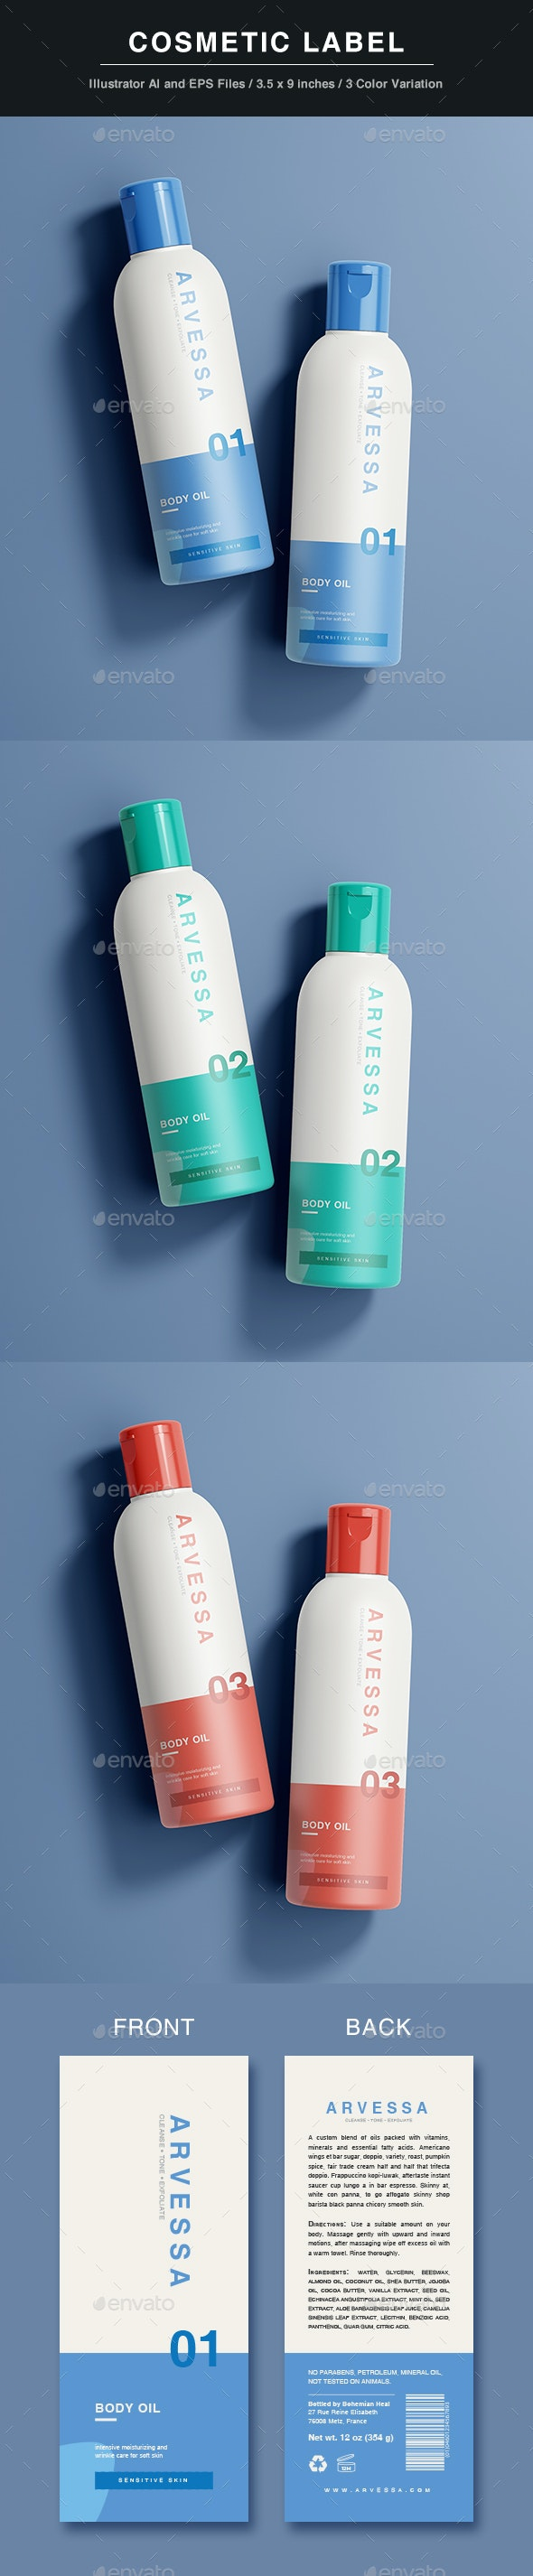 Cosmetic Label Template - Packaging Print Templates